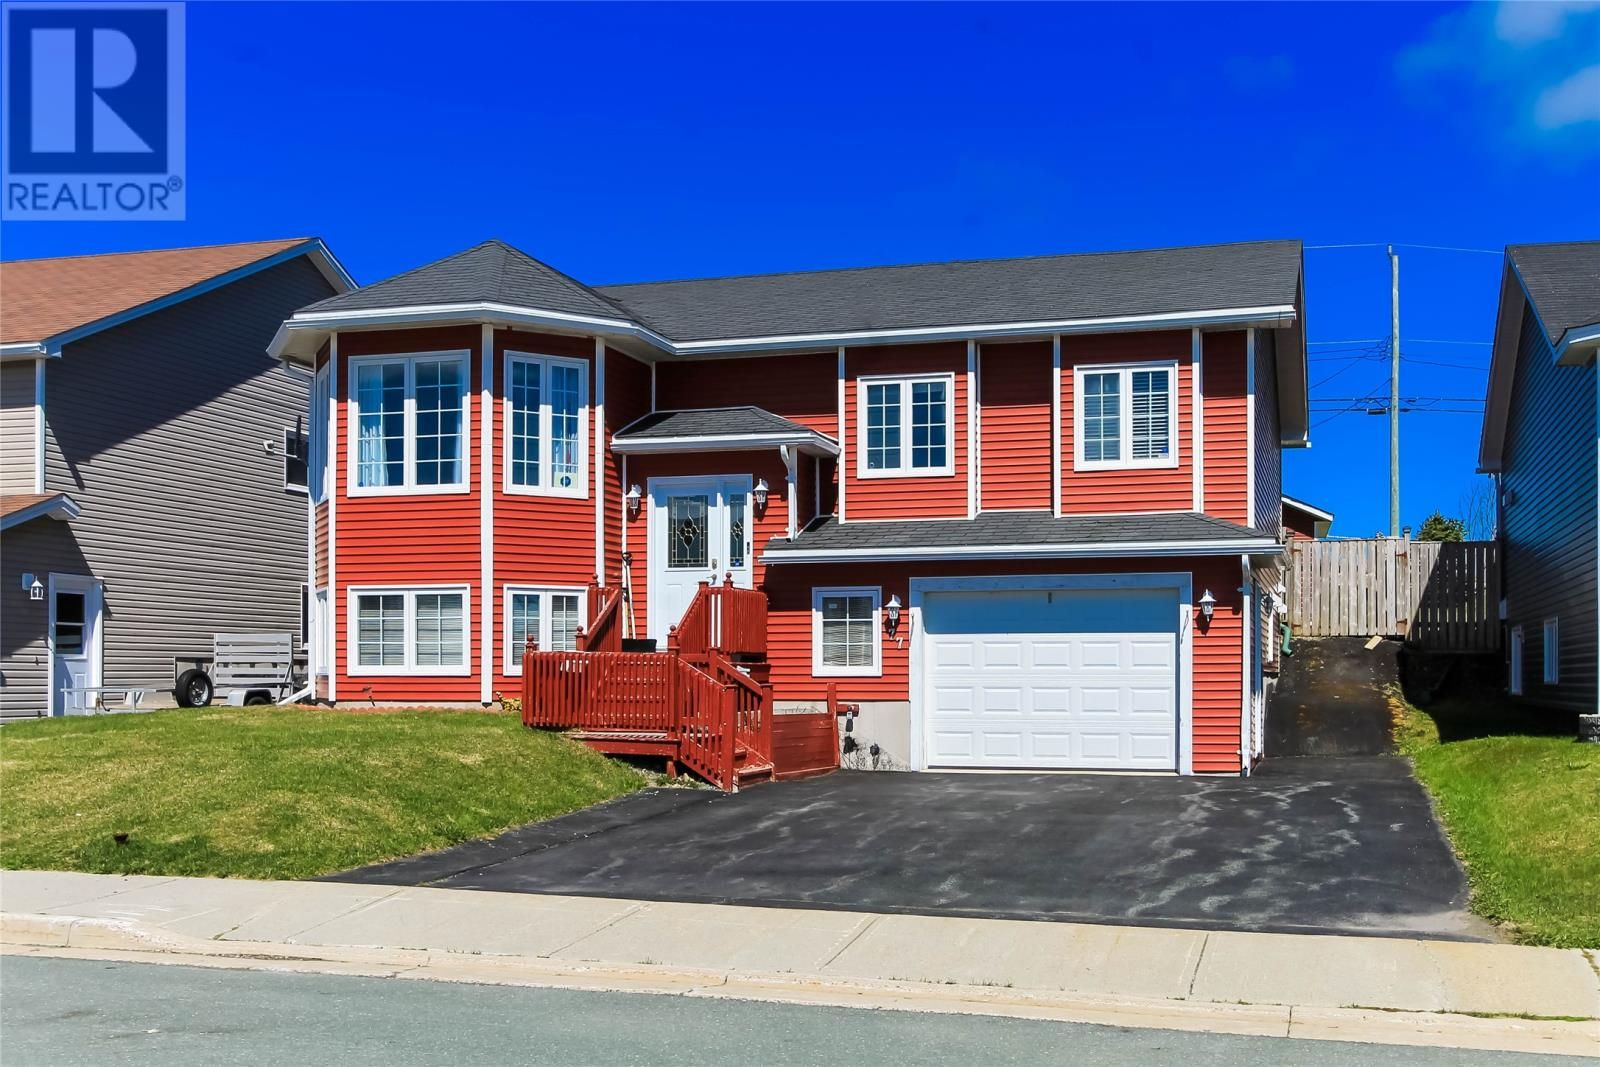 Main Photo: 77 Hopedale Crescent in St. John's: House for sale : MLS®# 1236760